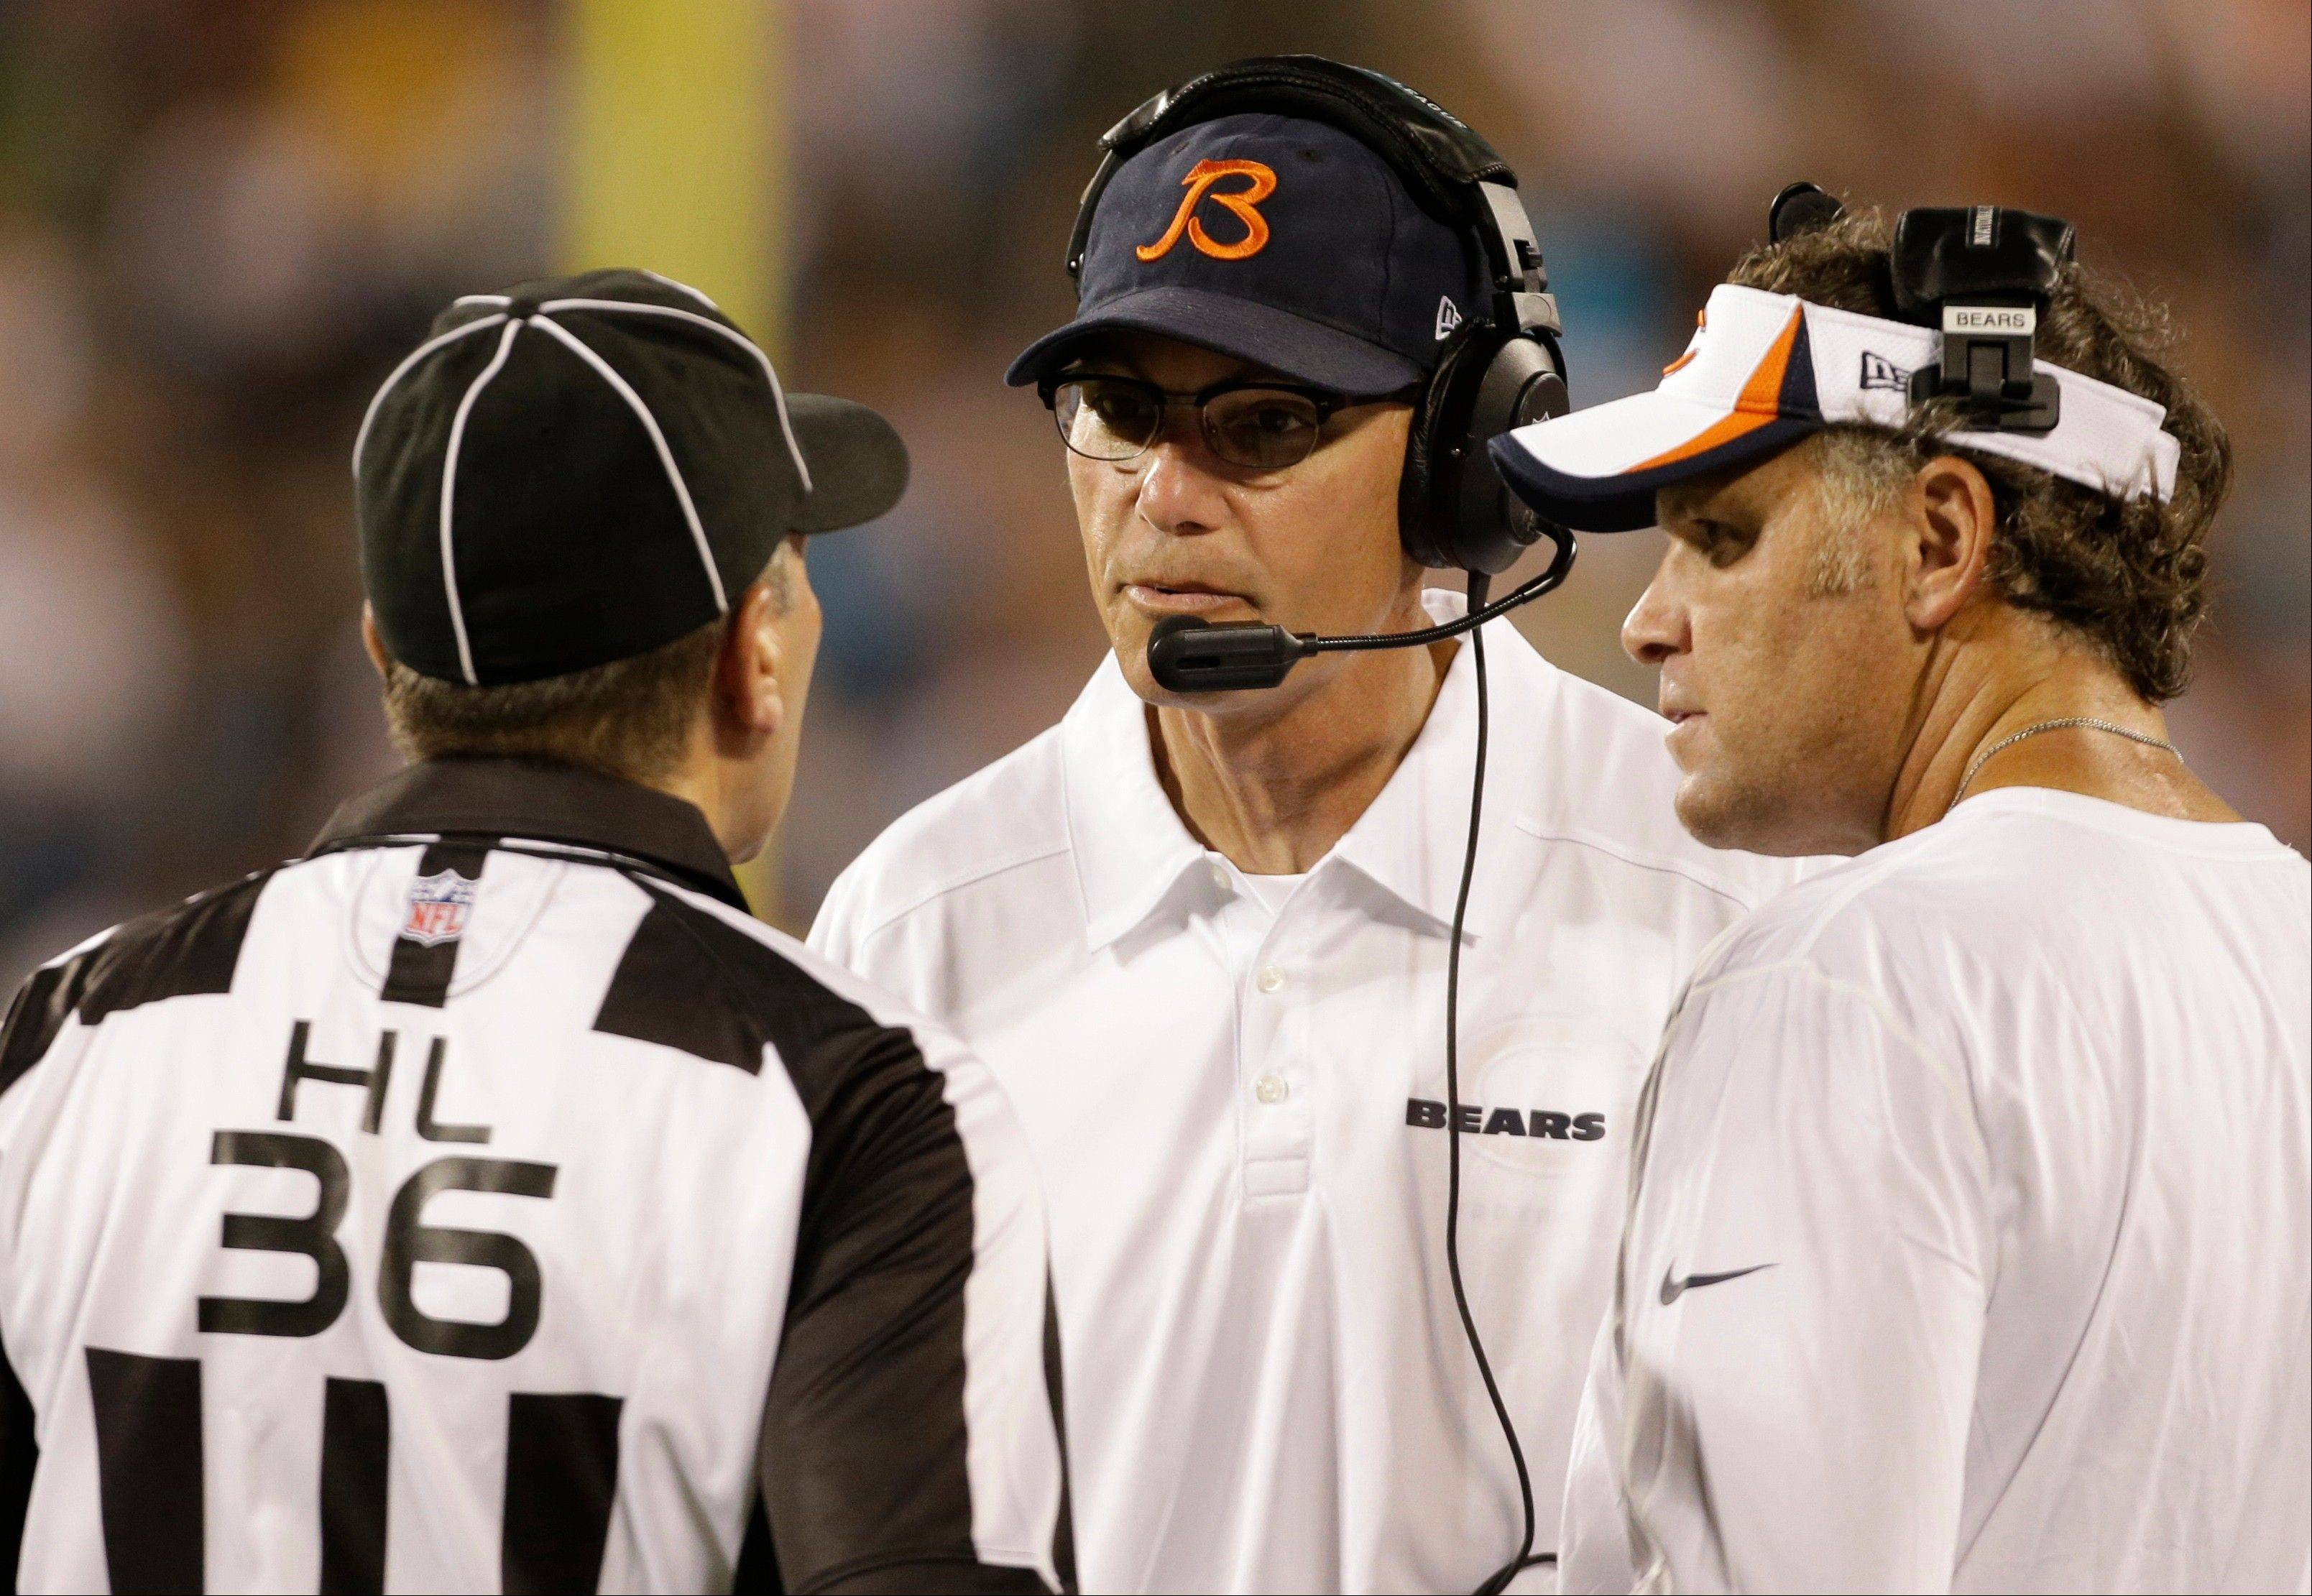 Chicago Bears head coach Marc Trestman, center, argues a call with head linesman Tony Veteri, left, during the first half of a preseason NFL football game in Charlotte, N.C., Friday, Aug. 9, 2013.